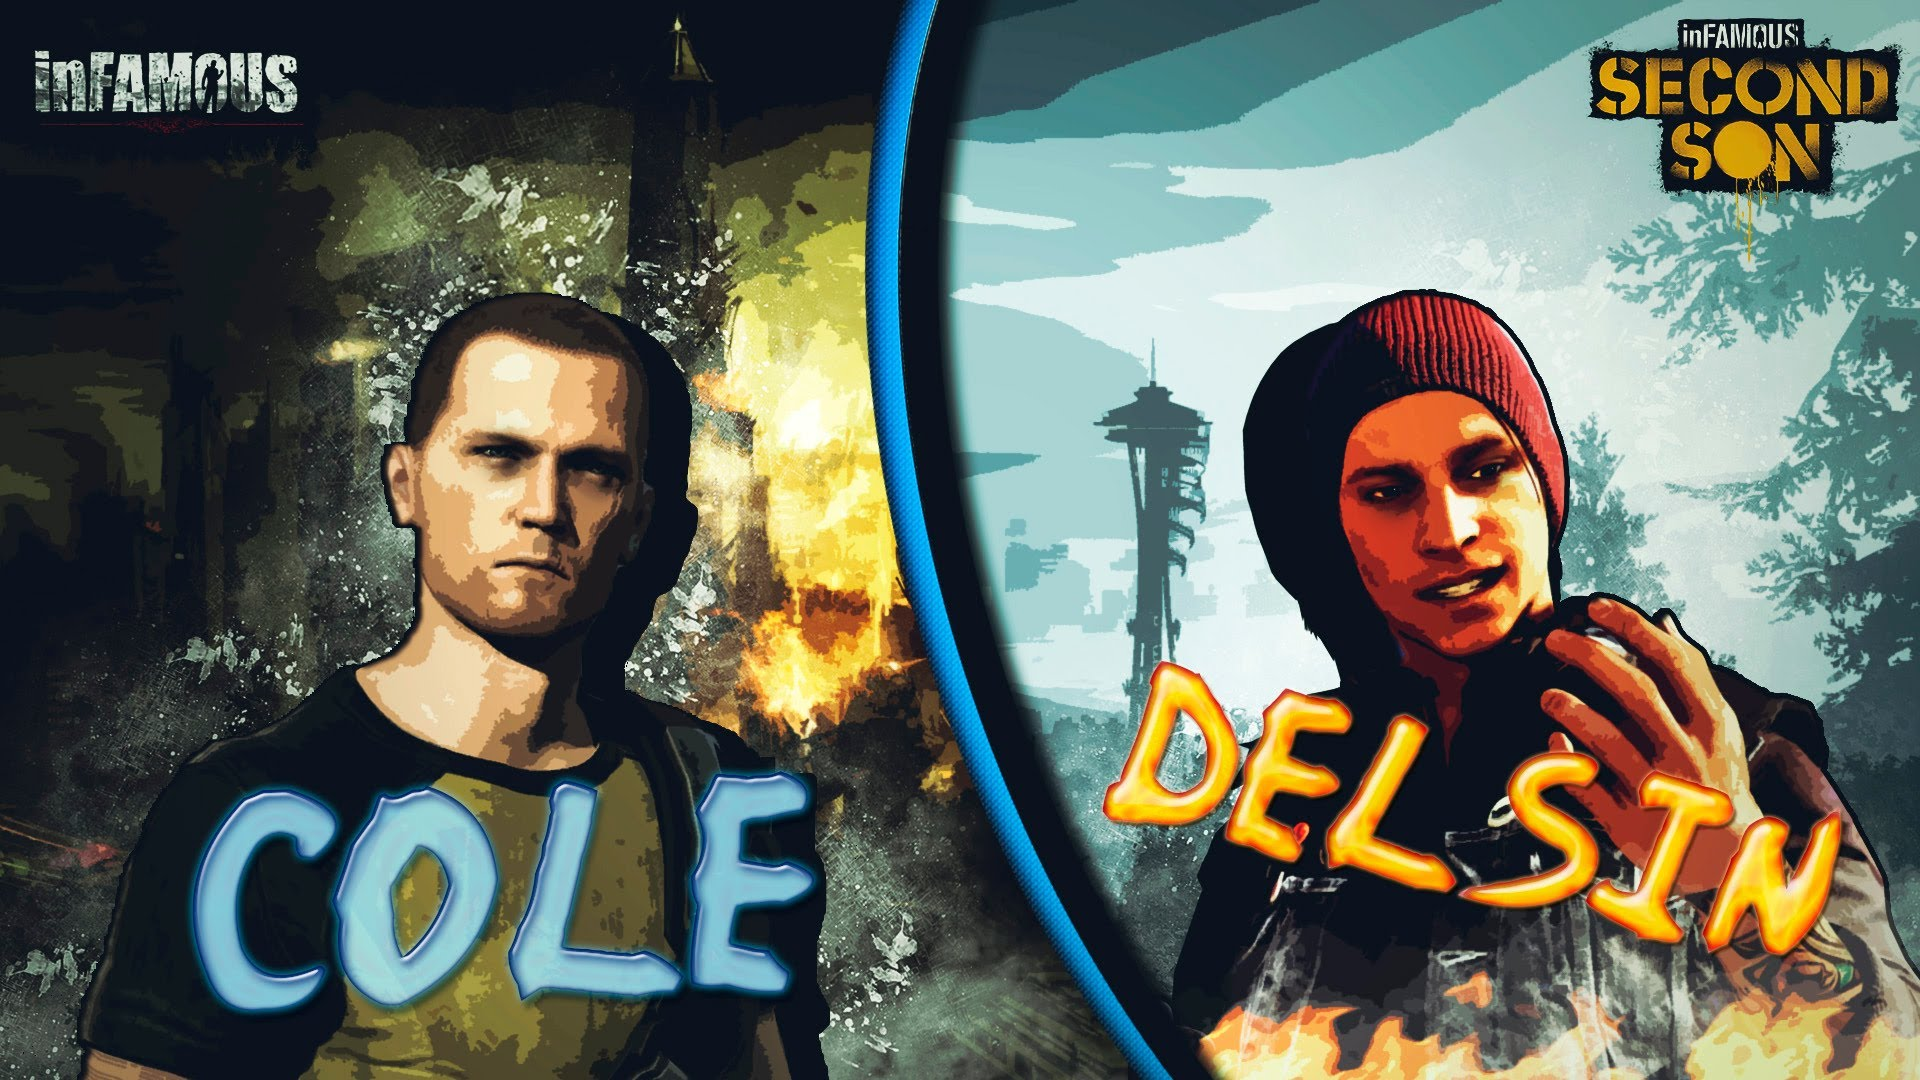 inFamous Showdown: Cole McGrath vs Delsin Rowe